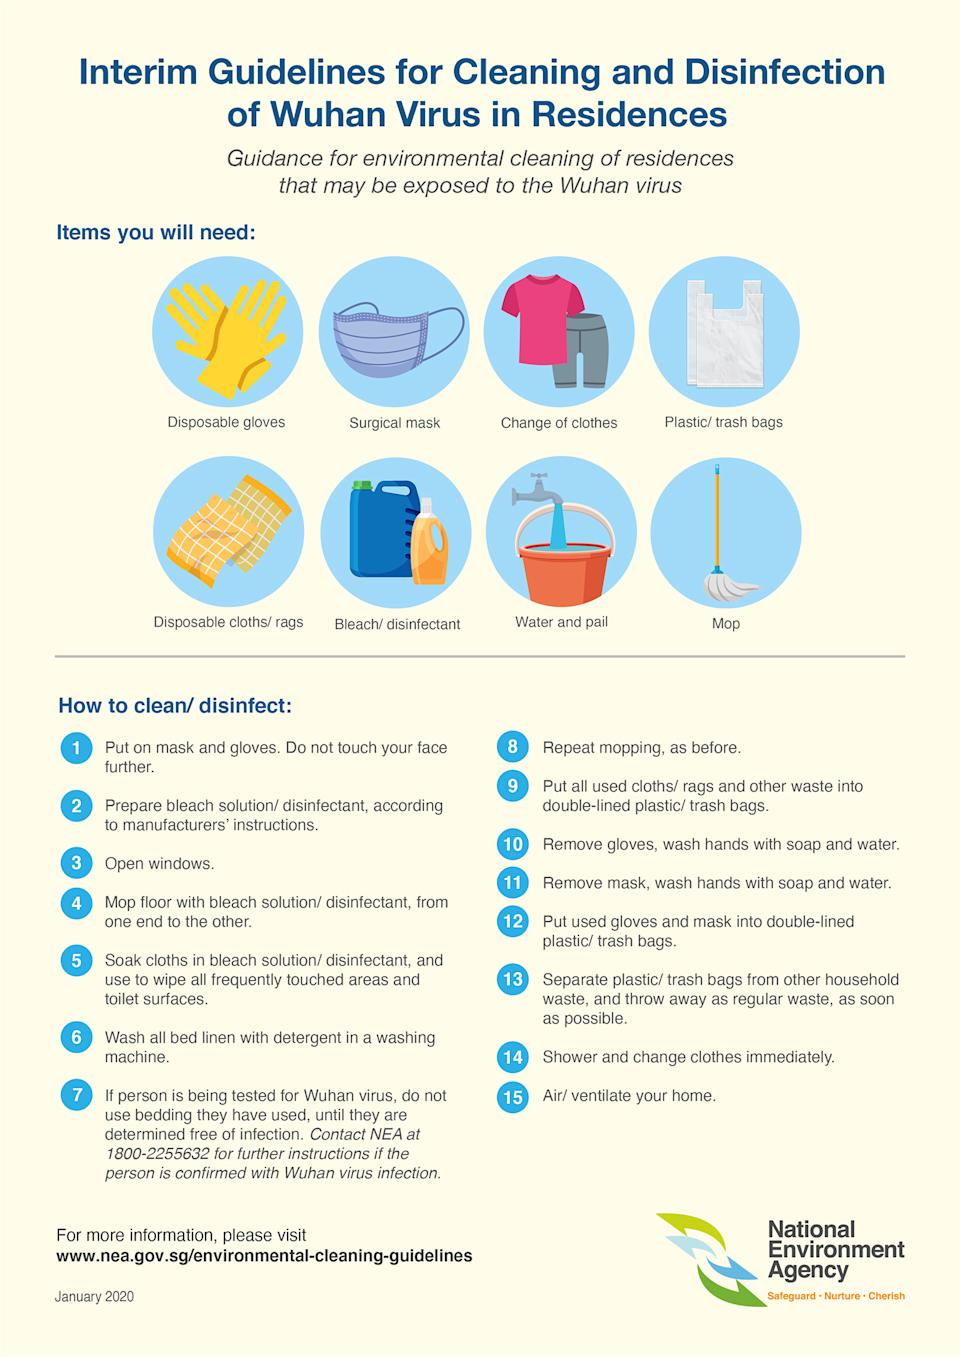 INFOGRAPHIC: National Environment Agency